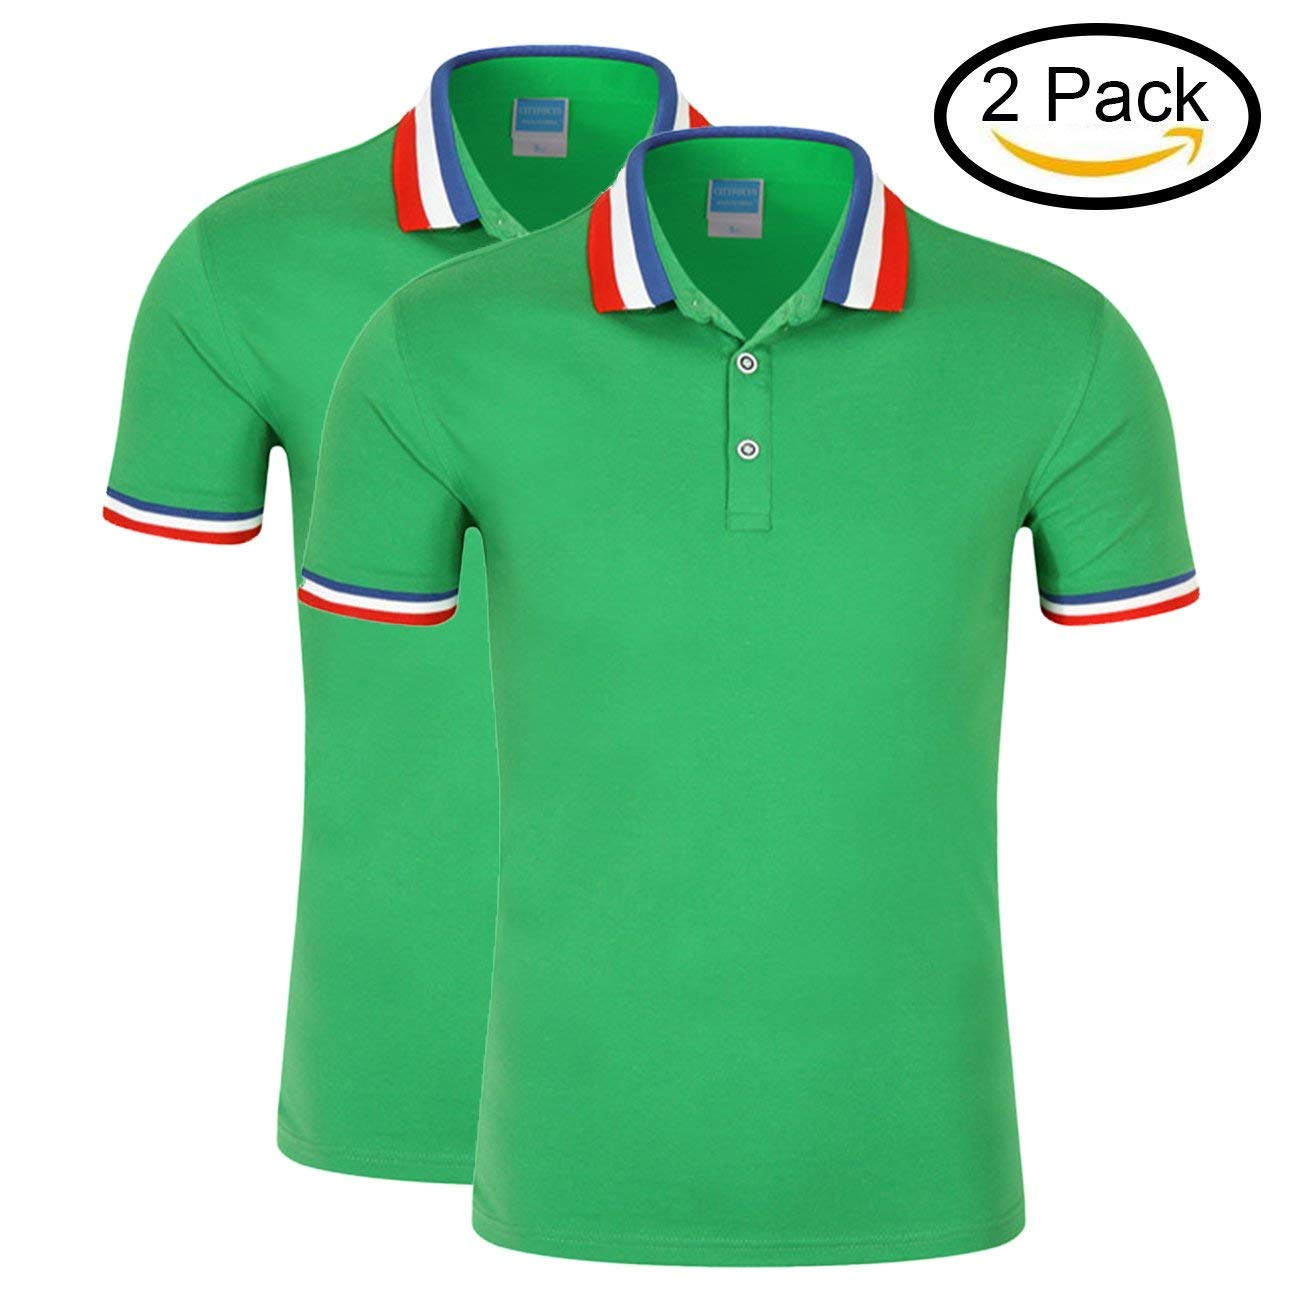 f681c888 Get Quotations · GEEZAN Polo T Shirts Women 2 Pack, Ladies Polo Shirts  Loose Fit Short Sleeve T